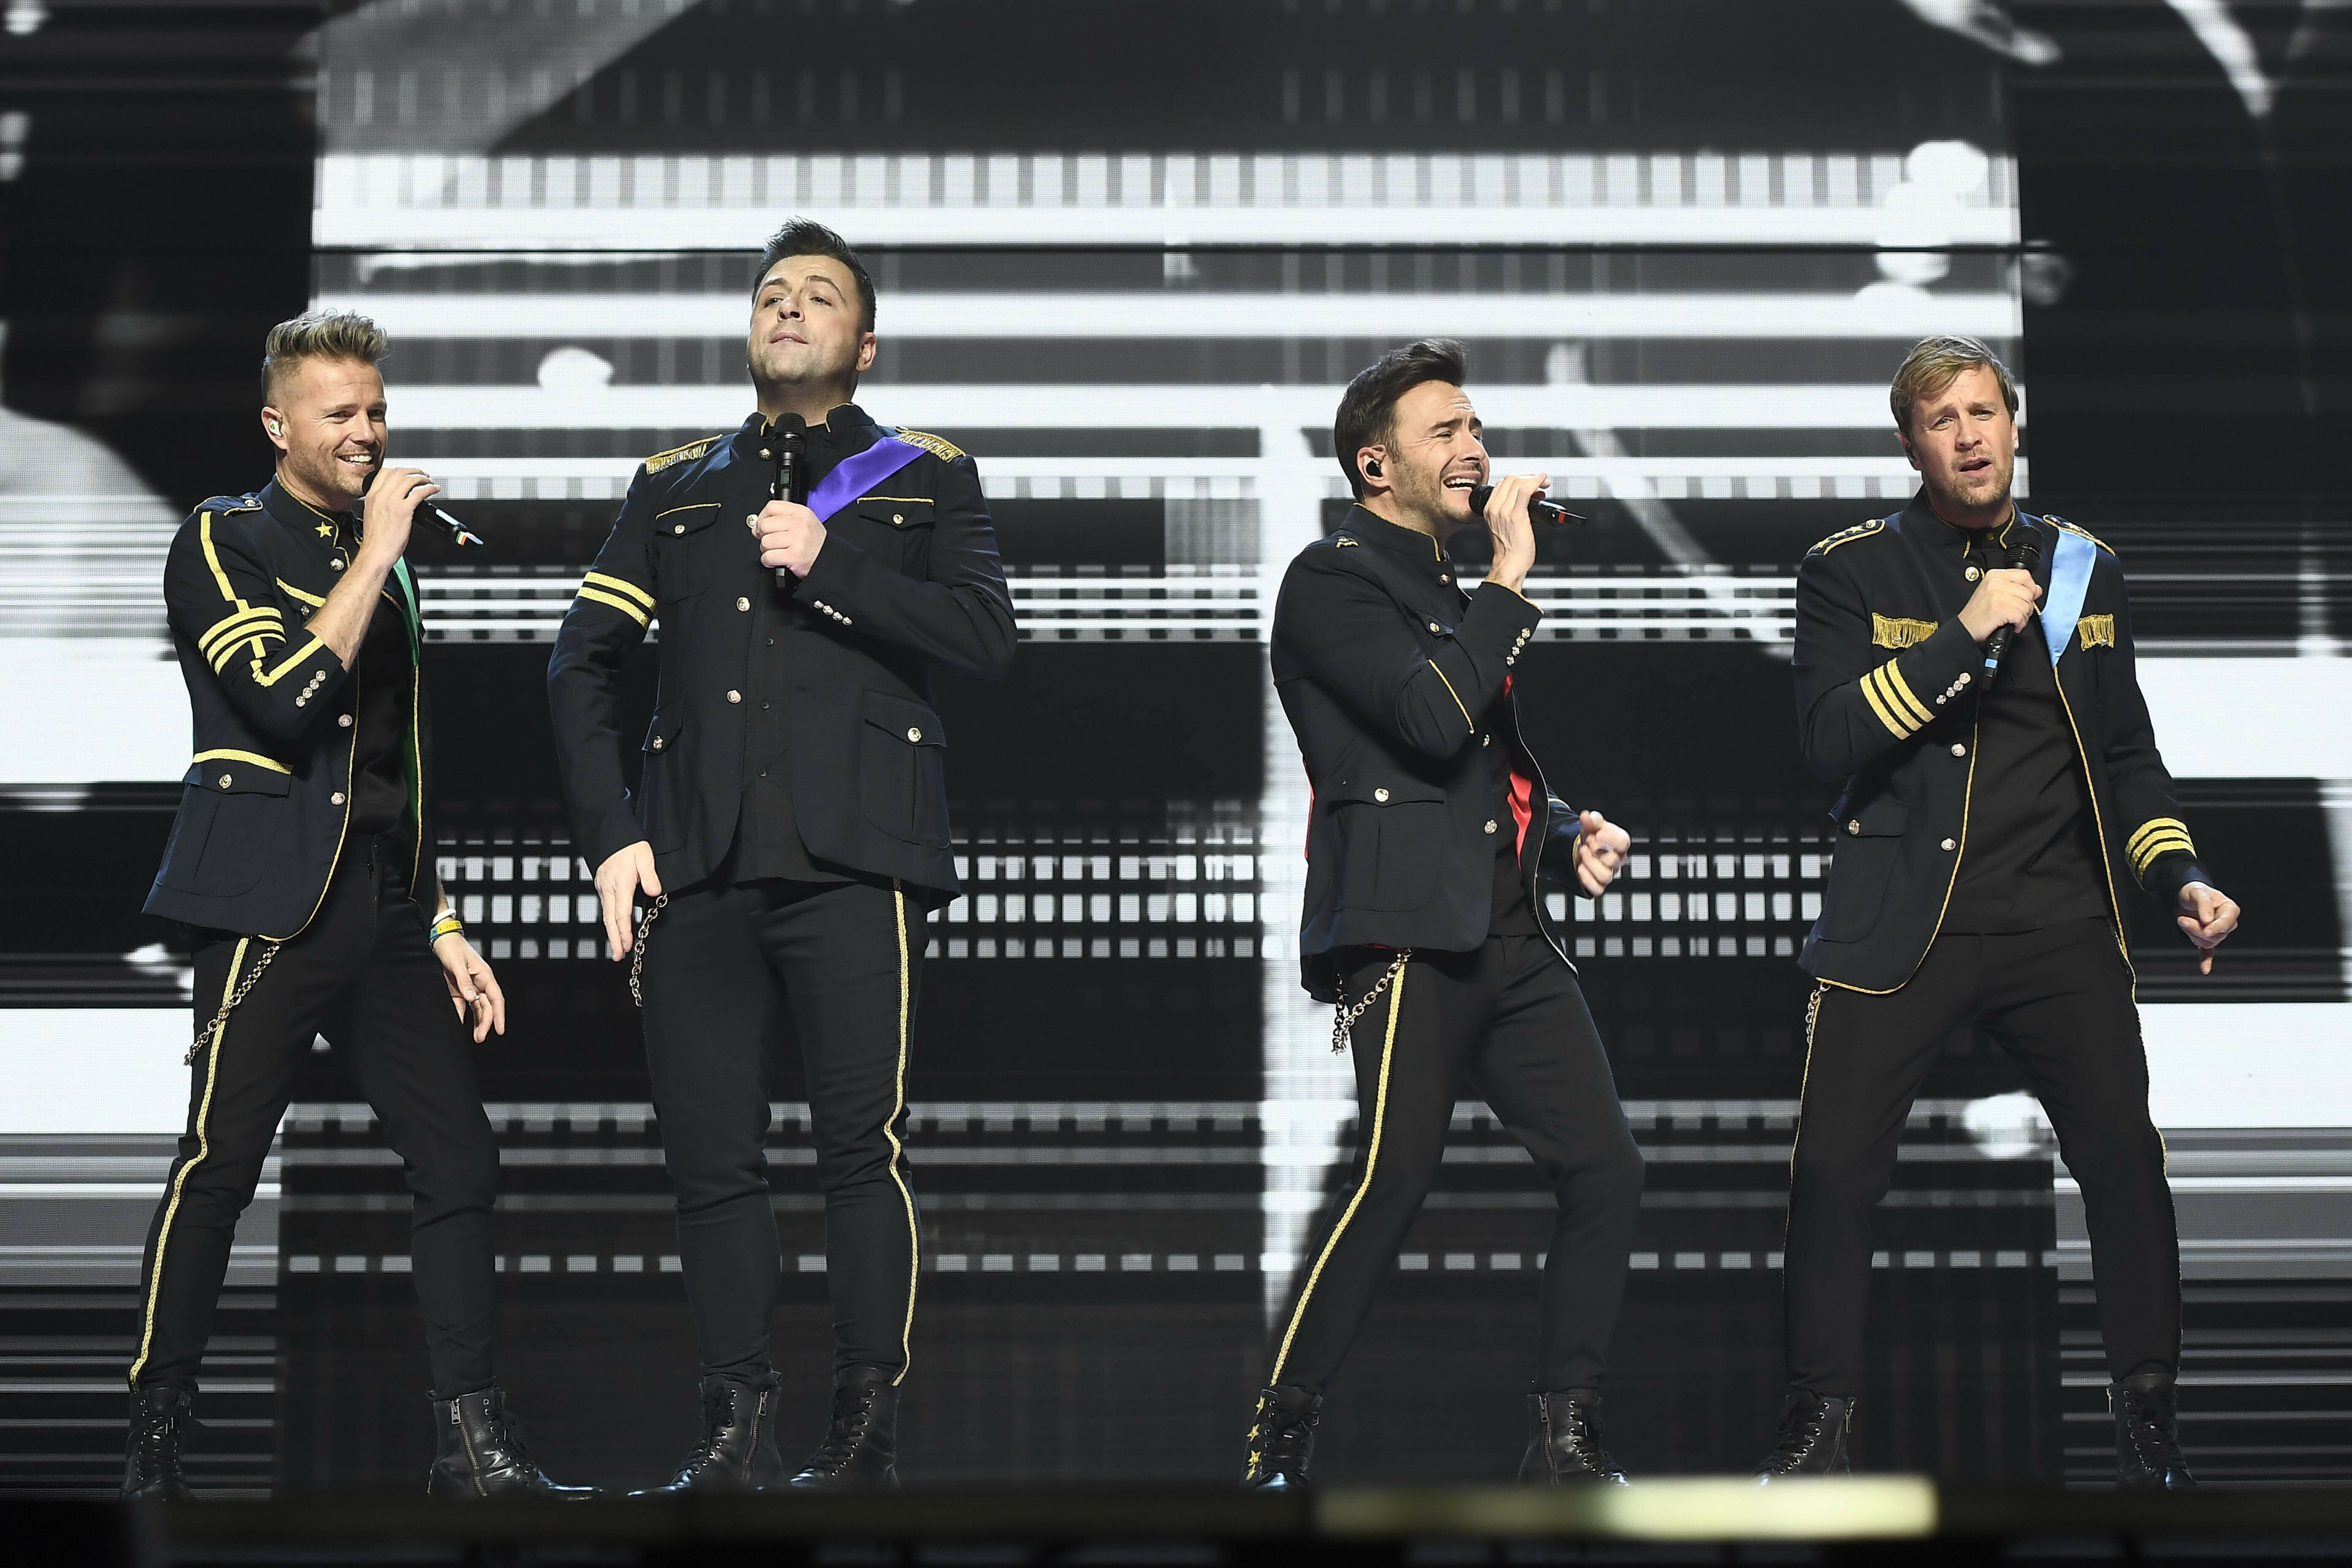 Photo by: KGC-138/STAR MAX/IPx 2019 6/23/19 Nicky Byrne, Mark Feehily, Shane Filan and Kian Egan of 'Westlife' performing at Birmingham Arena.